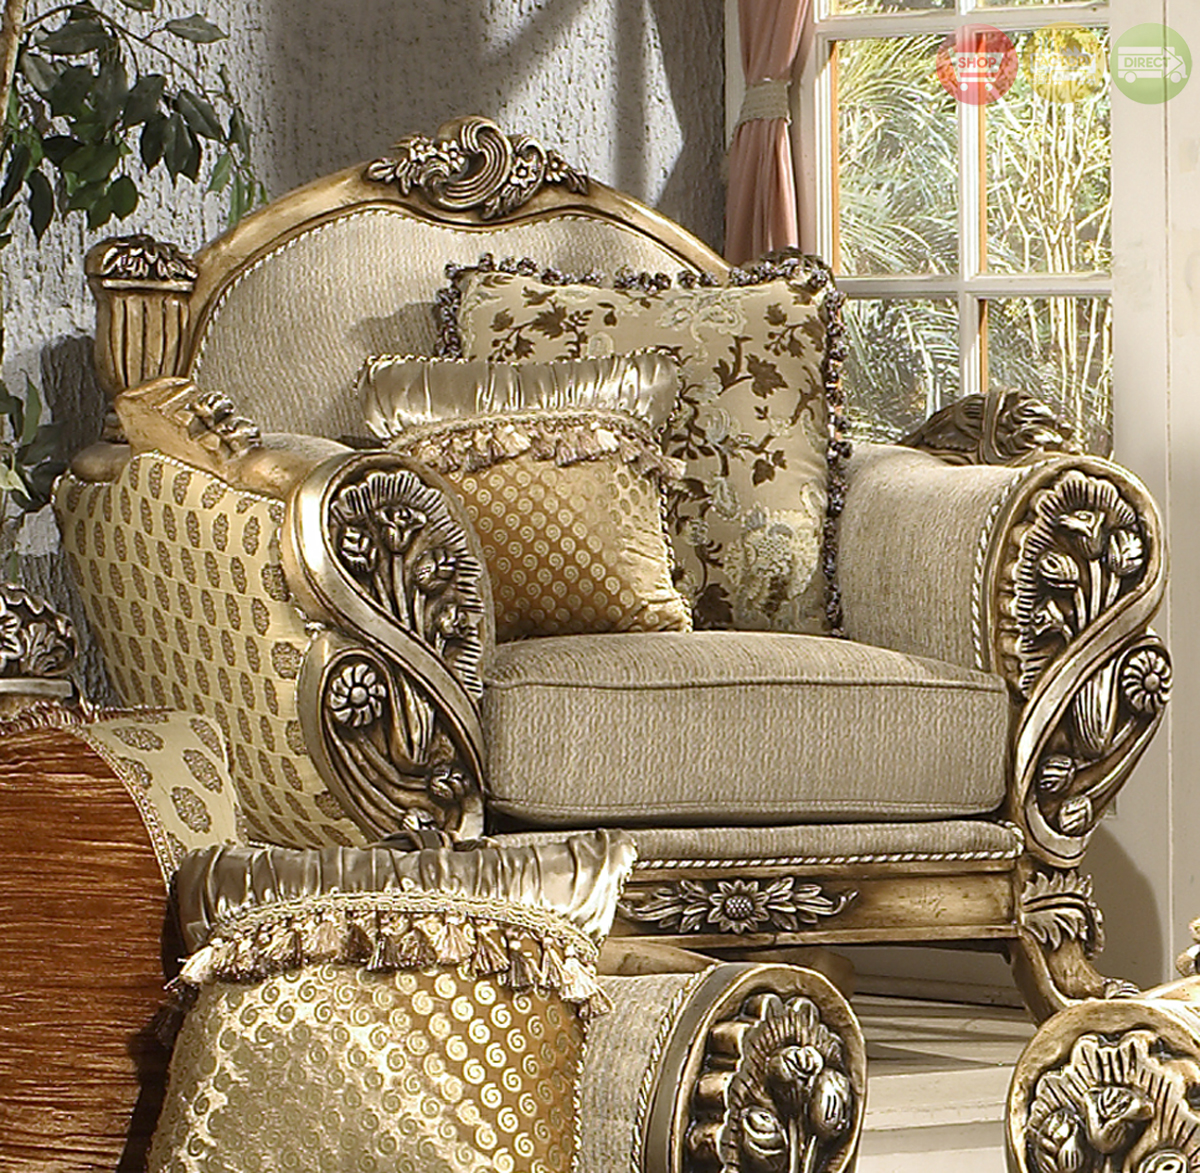 Luxury Classic Living Rooms: Luxury Traditional Living Room Upholstery Set W/Carved